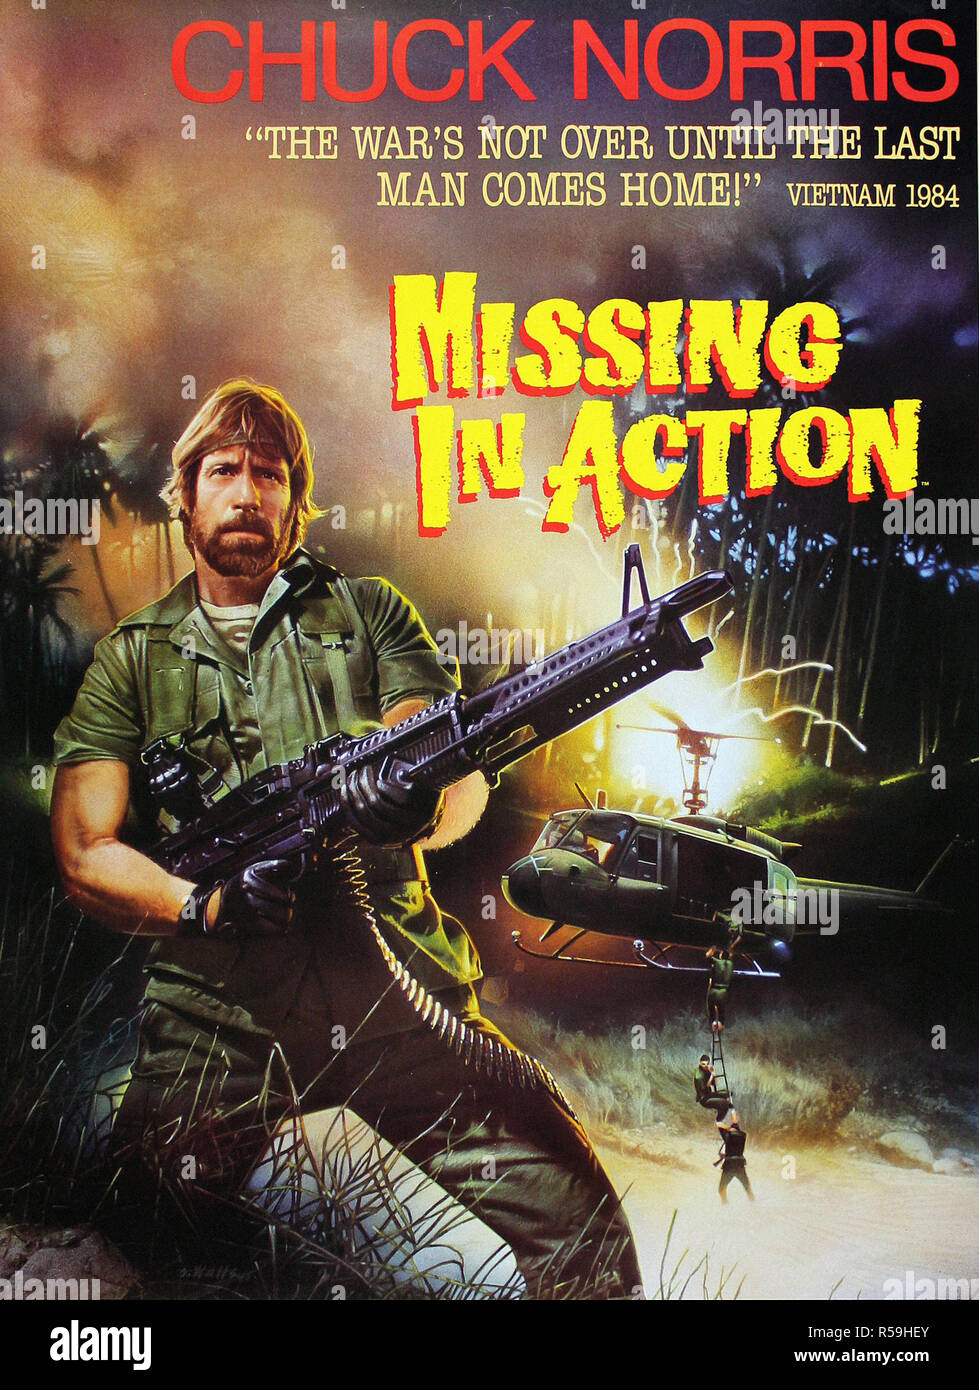 Missing in Action - Original Movie Poster Stock Photo